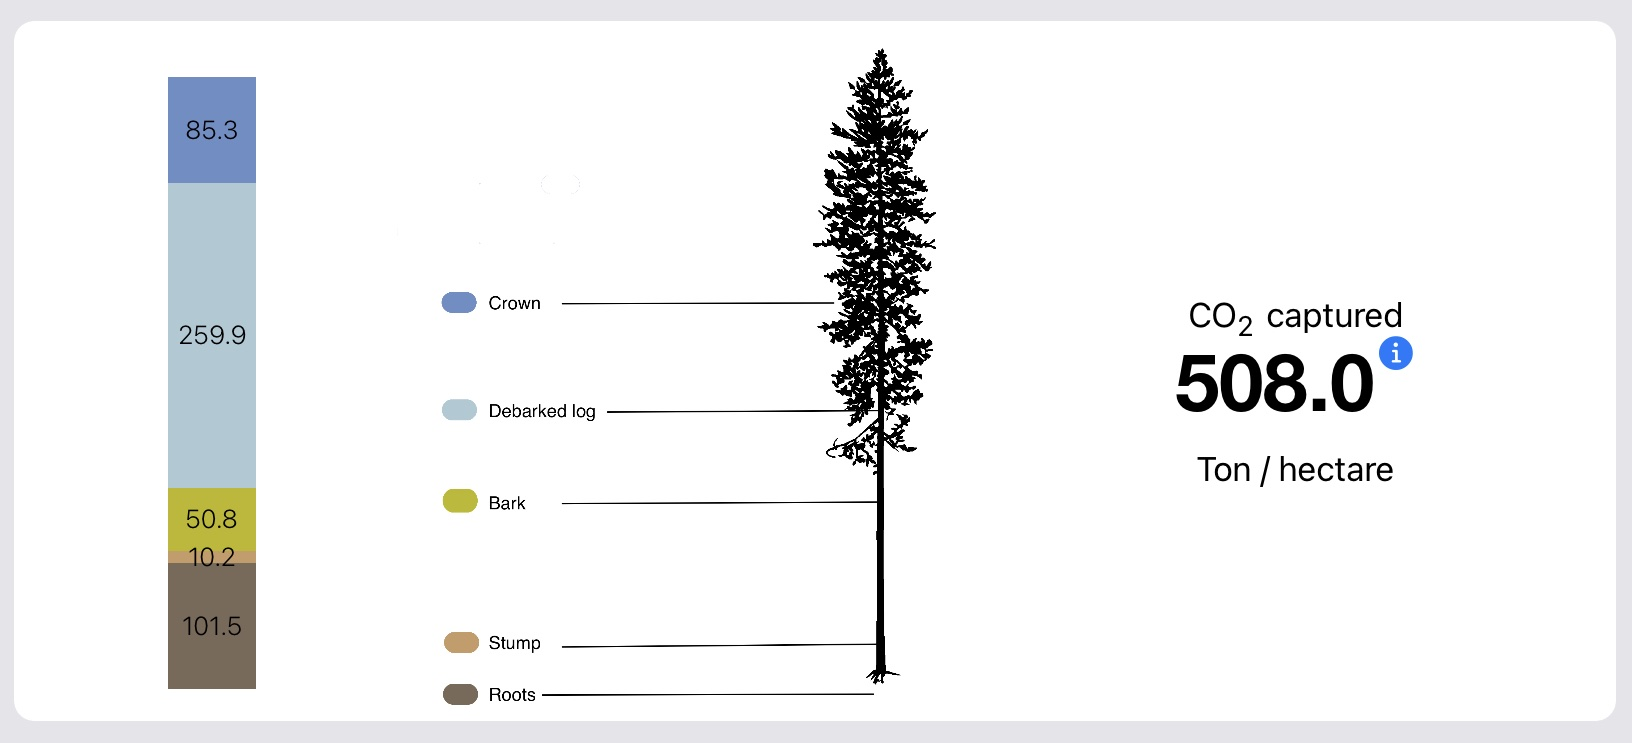 How much carbon does the forest capture?